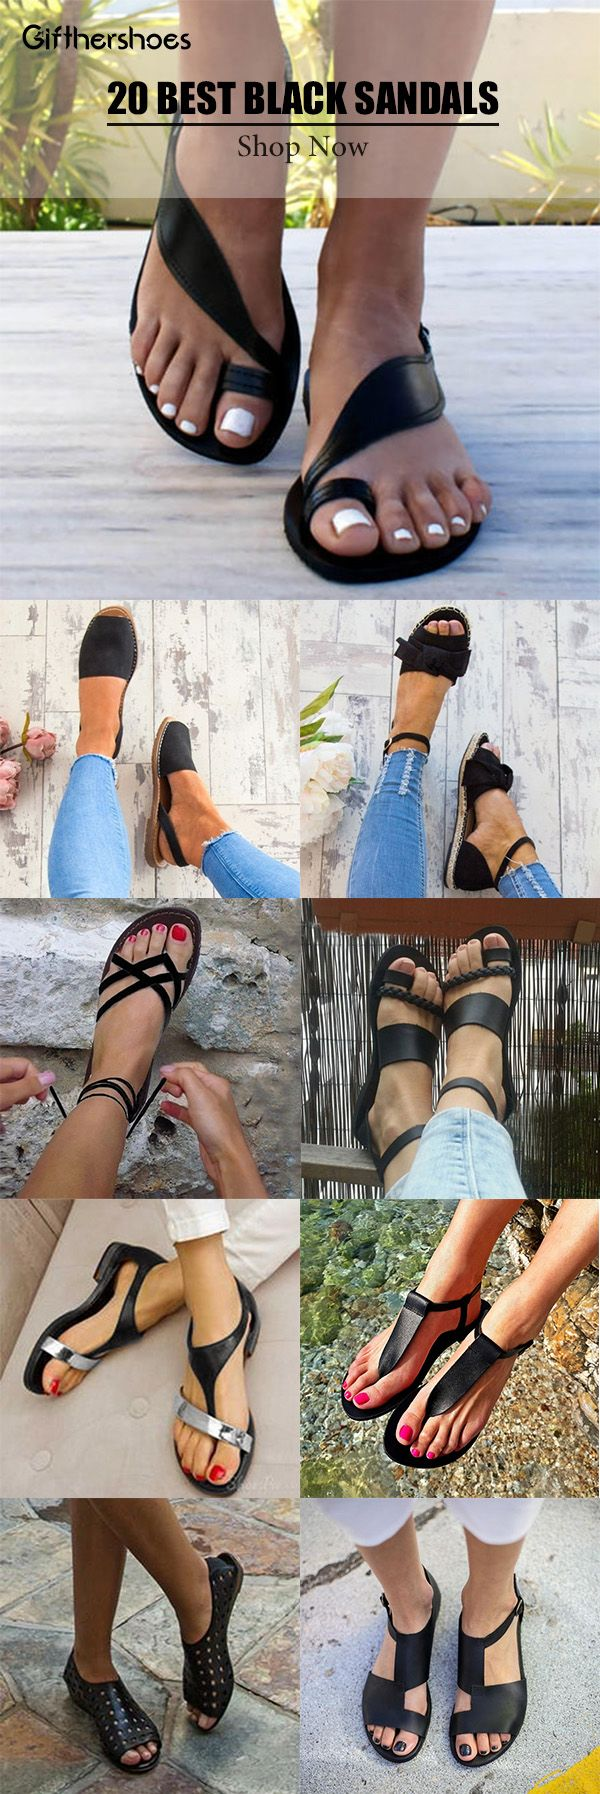 SHOP NOW>>20+ Black Sandals,Outdoor Sandals,Daily Sandals Shoes Picks for Your Daily Outfits